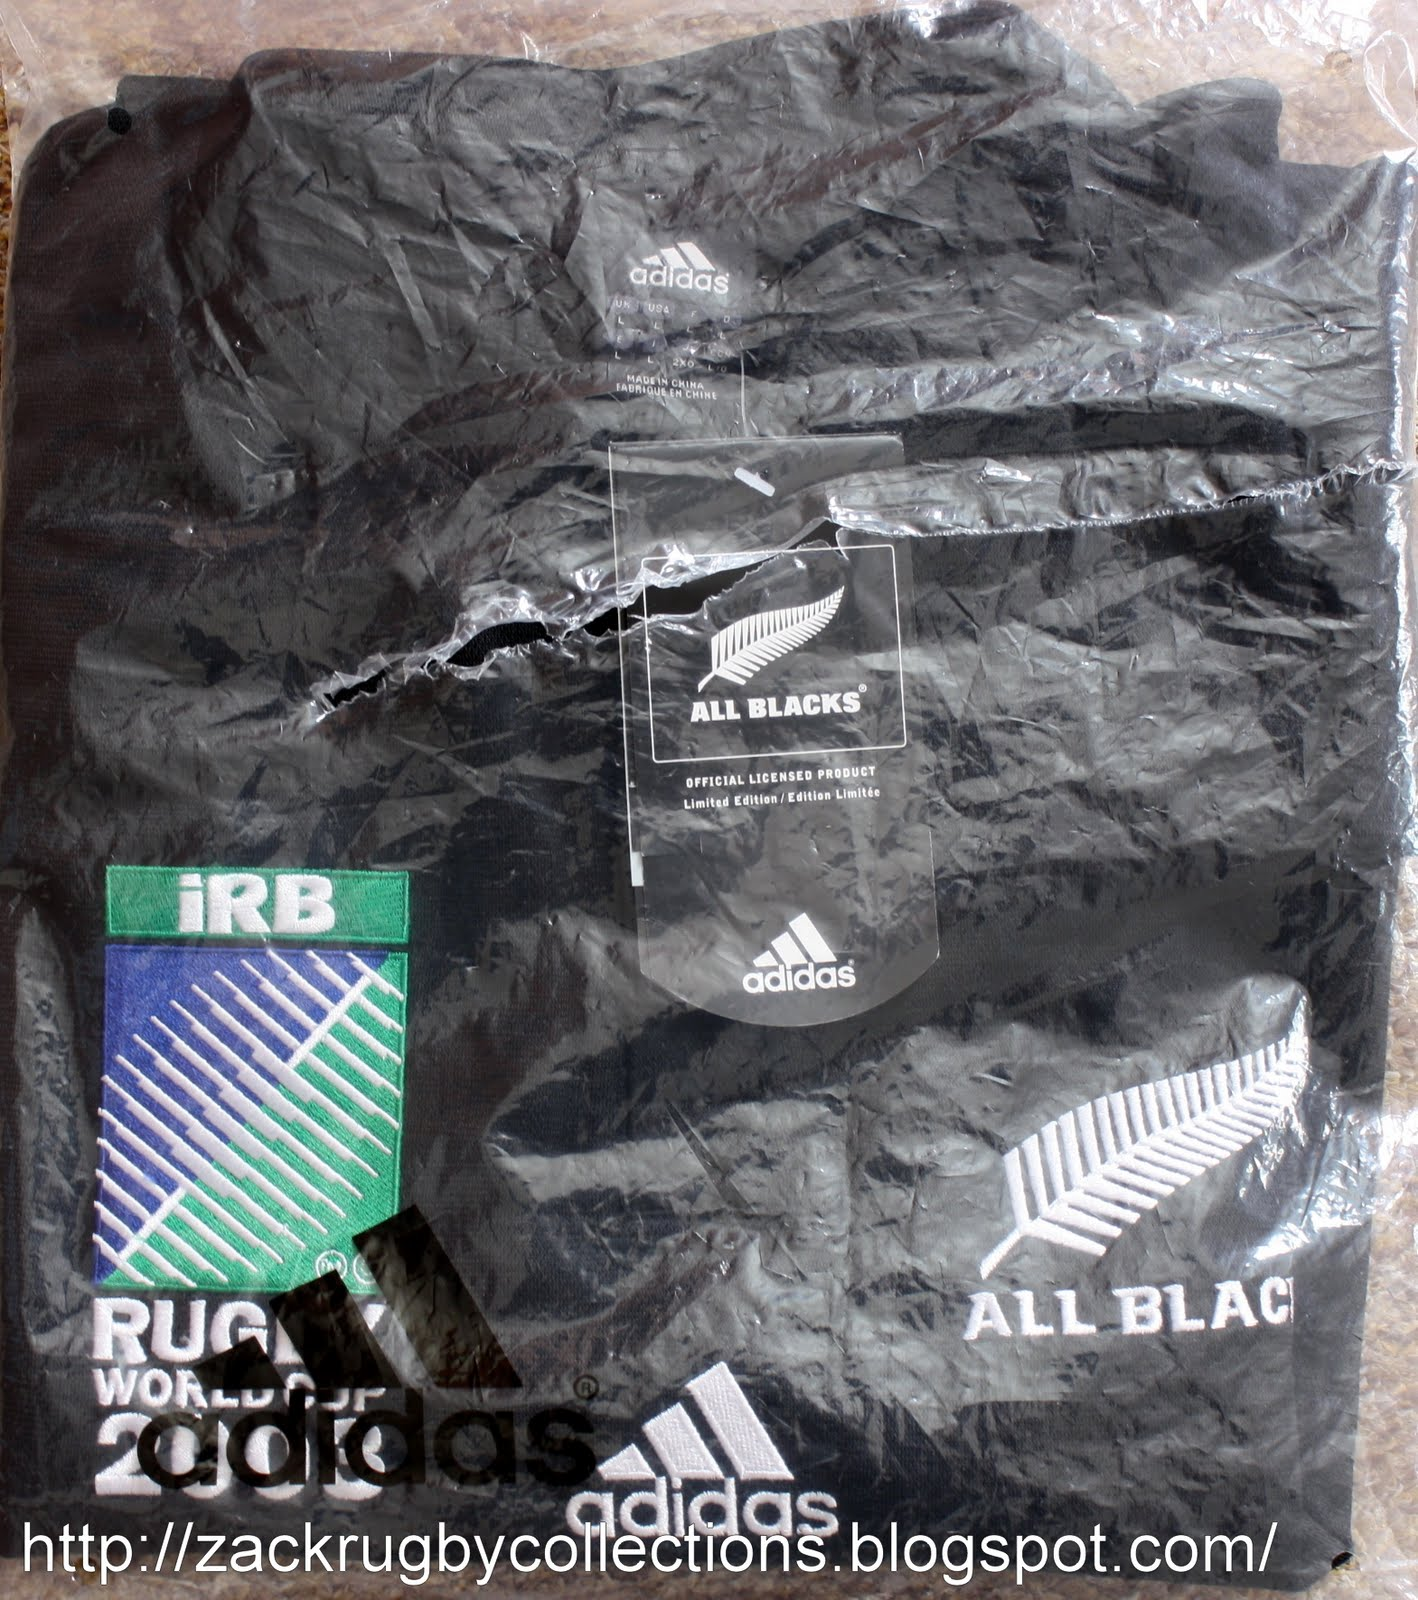 dcf3730b7cd New Zealand All Blacks SS Rugby World Cup 2003 LTD Edition Rugby Jersey  made by Adidas. Official All Blacks LTD Edition rugby jersey released for  Rugby ...